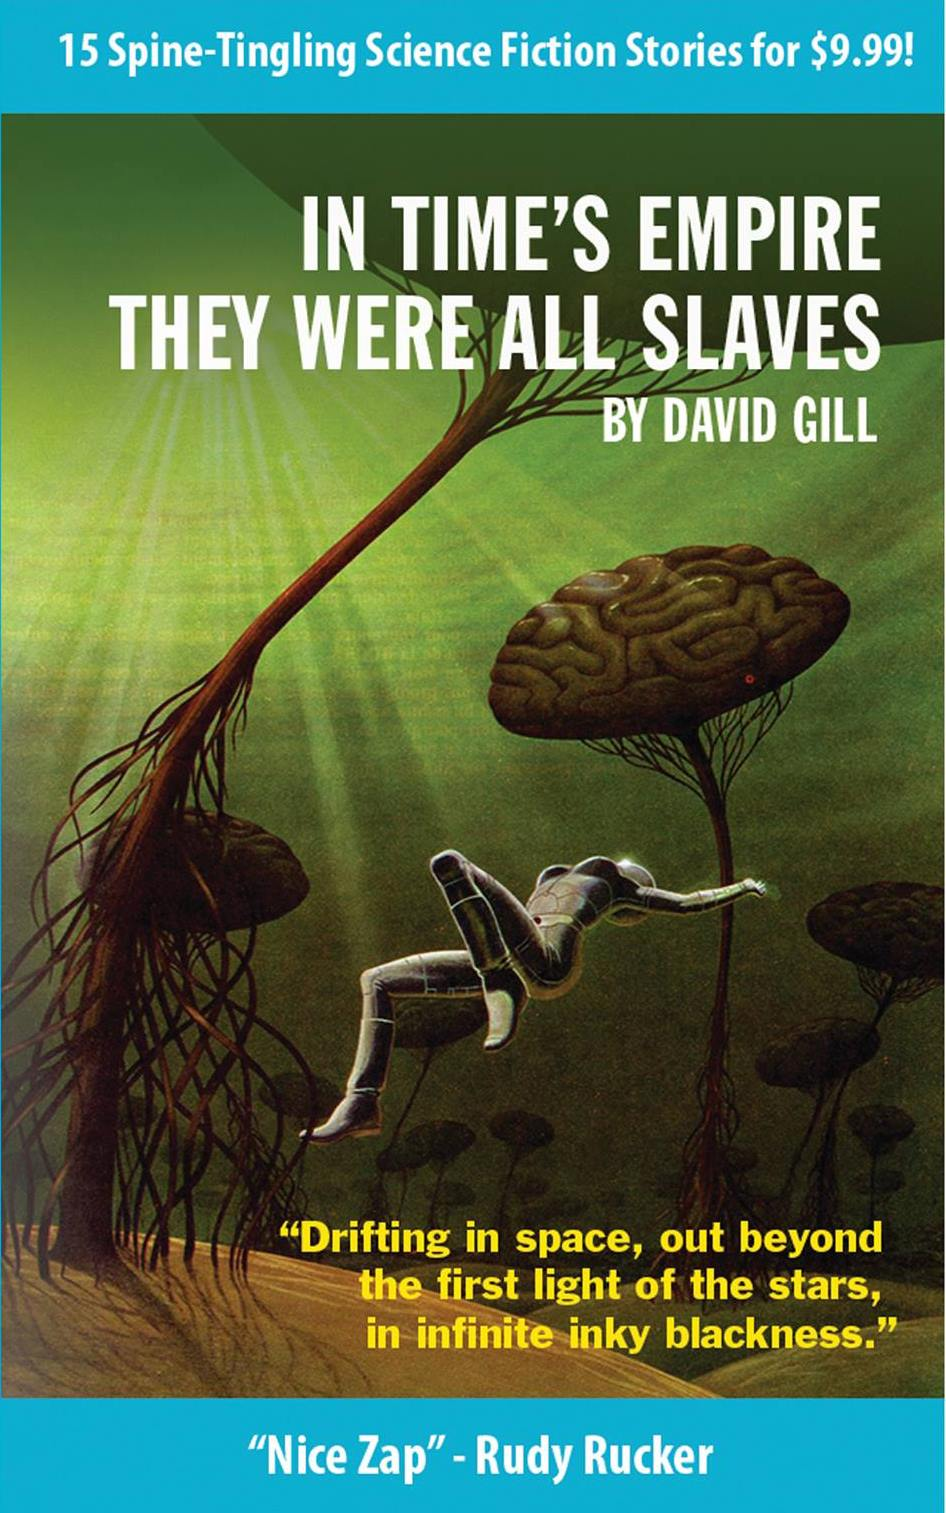 In Time's Empire They Were All Slaves now available from Pravic Books!